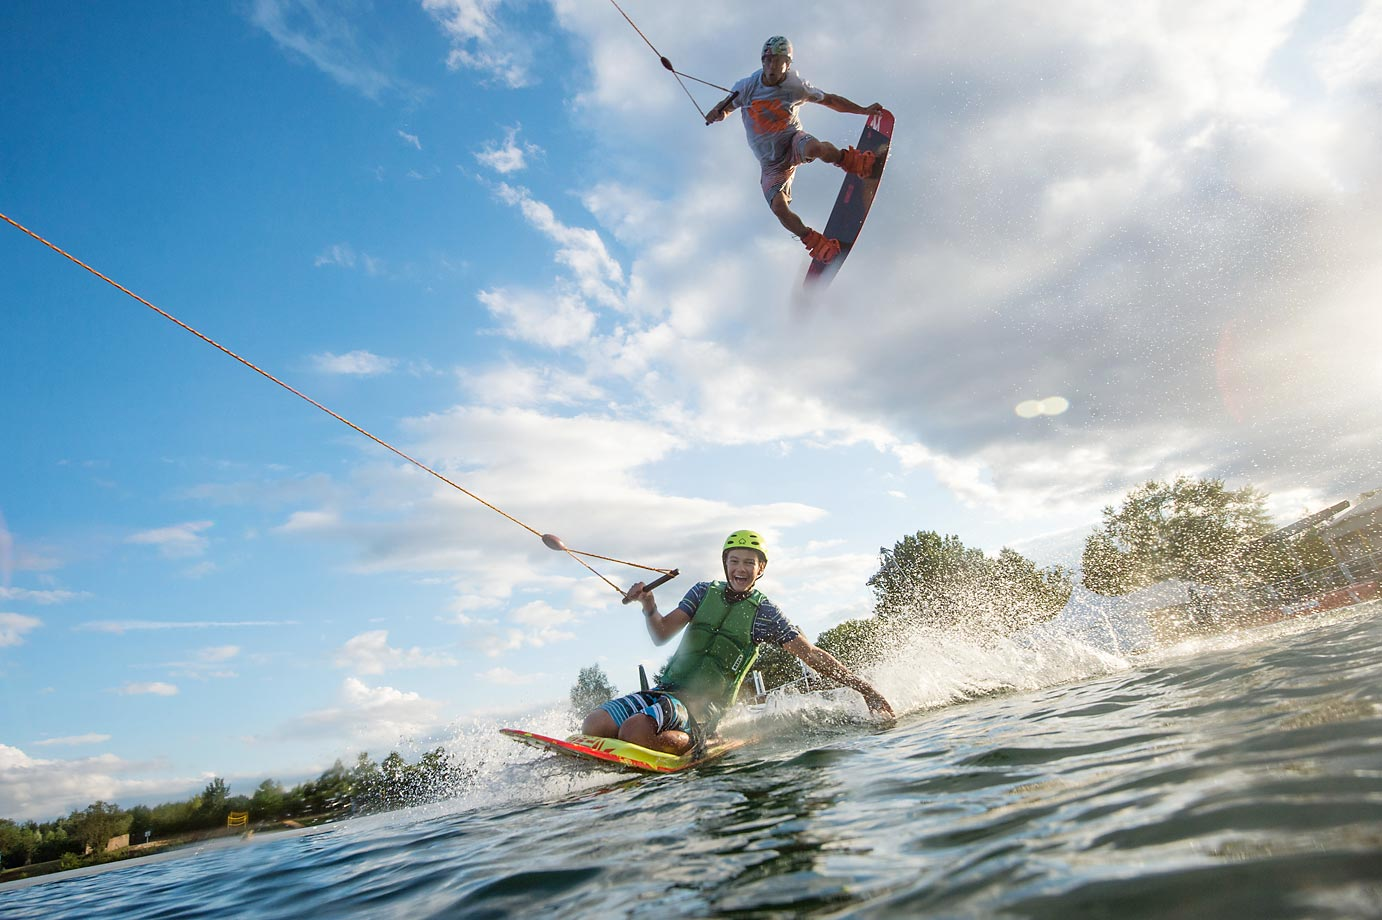 Wakeboarders Moritz Petri and Cedric Schmidt during a training session at 'Hotspot Seepark' in Niederweimar, Germany.